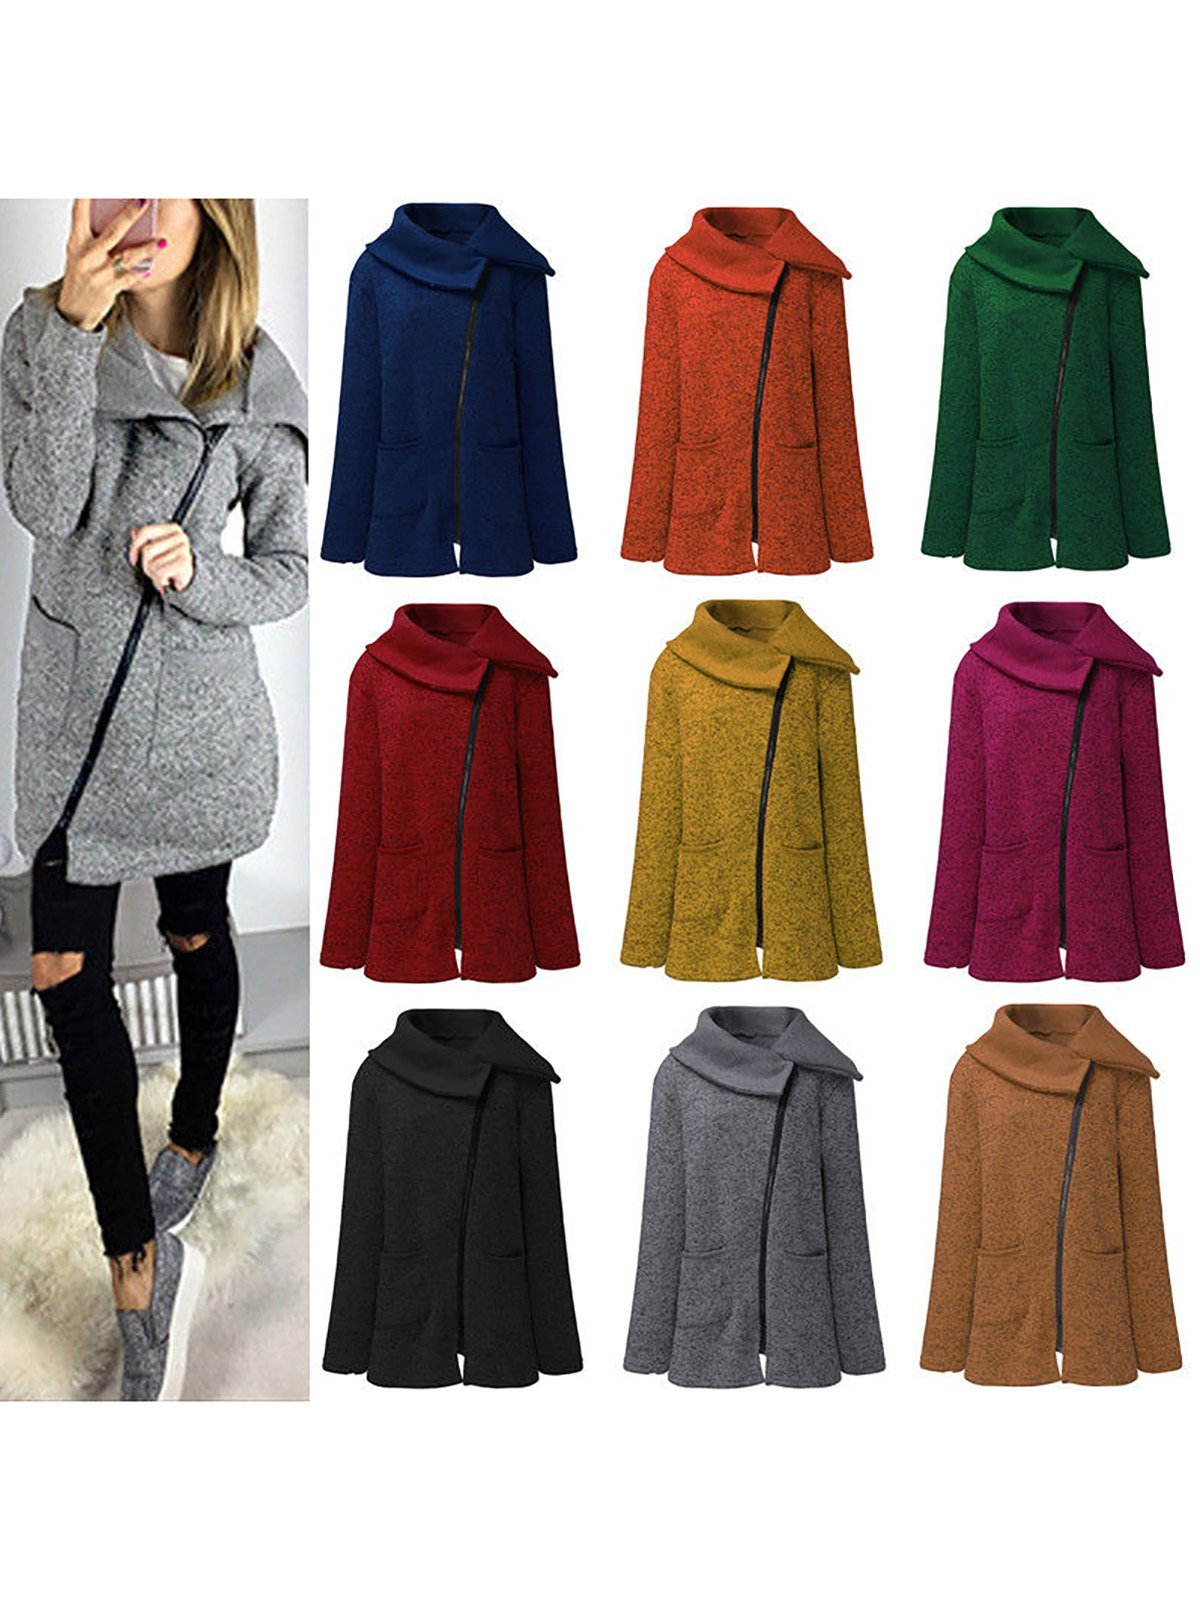 Annychloe Paneled Solid Cotton Winter Plus Size Side Zipper Coat